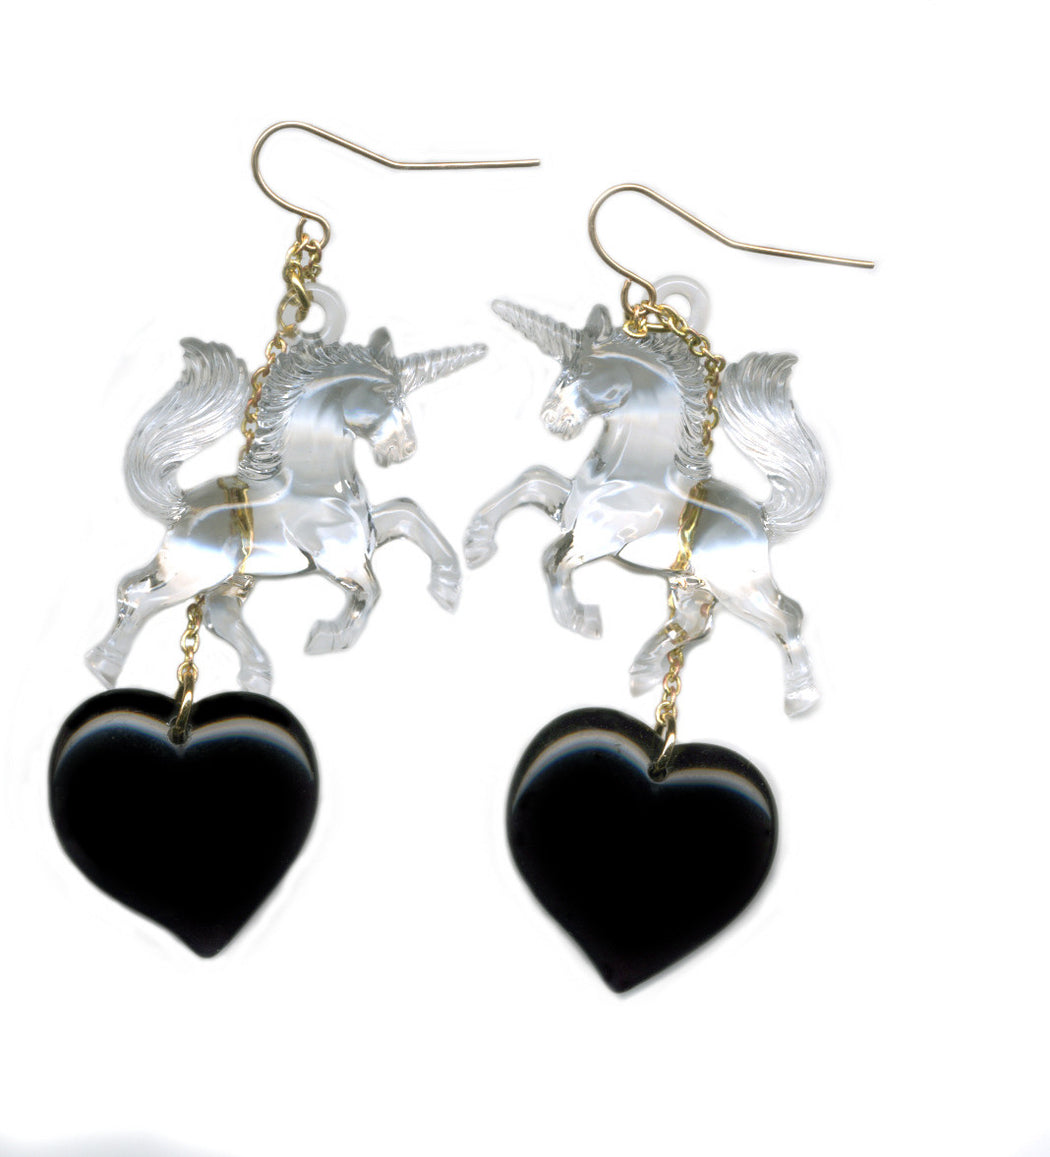 Sweet Dreams earrings - Family Affairs